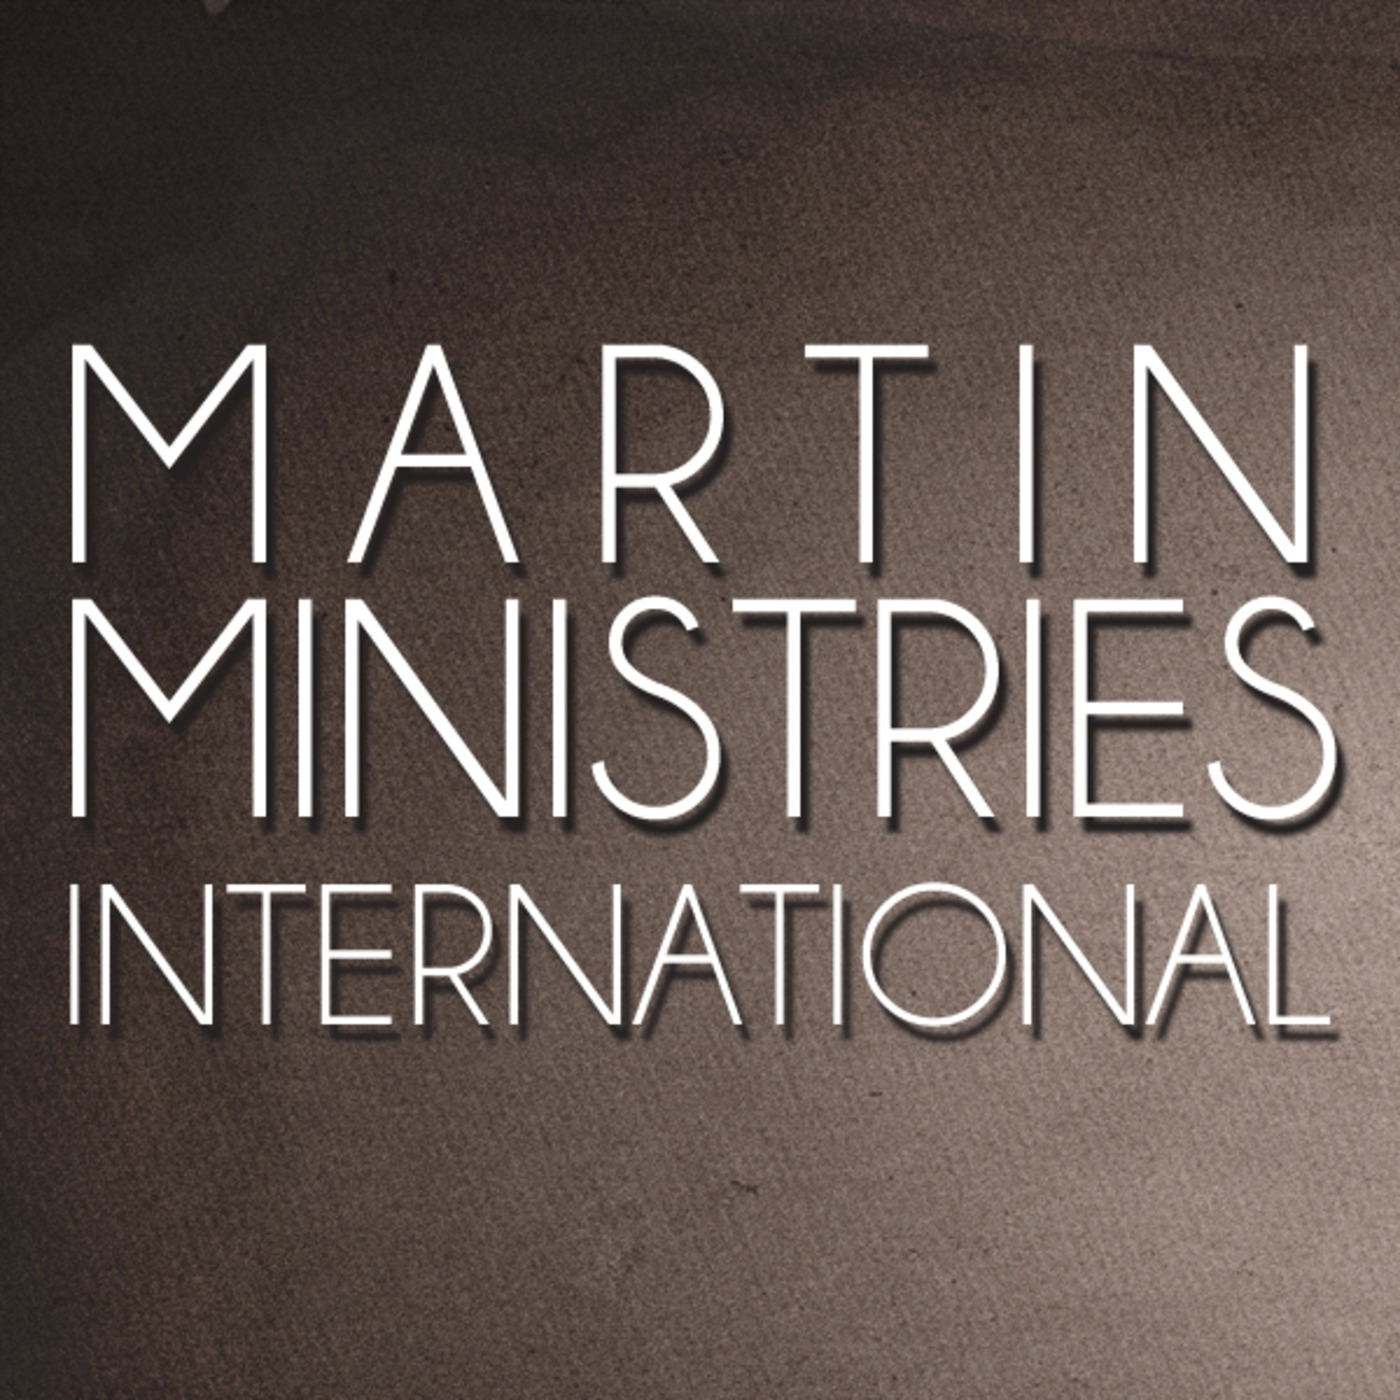 Martin Ministries International